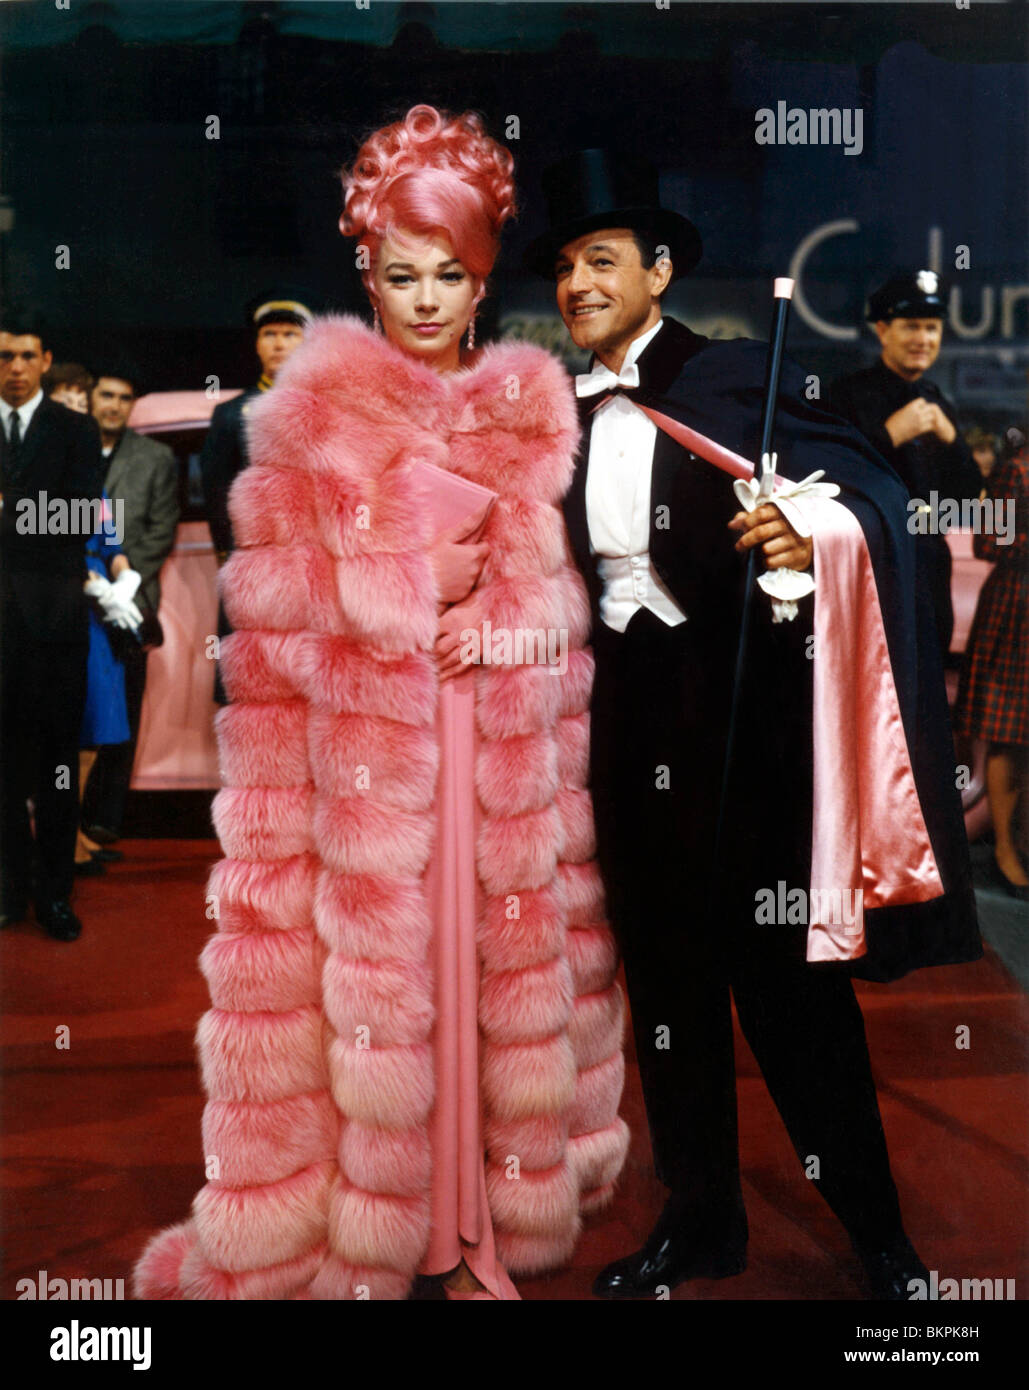 WHAT A WAY TO GO (1964) SHIRLEY MACLAINE, GENE KELLY WAWT ... Shirley Maclaine In What A Way To Go